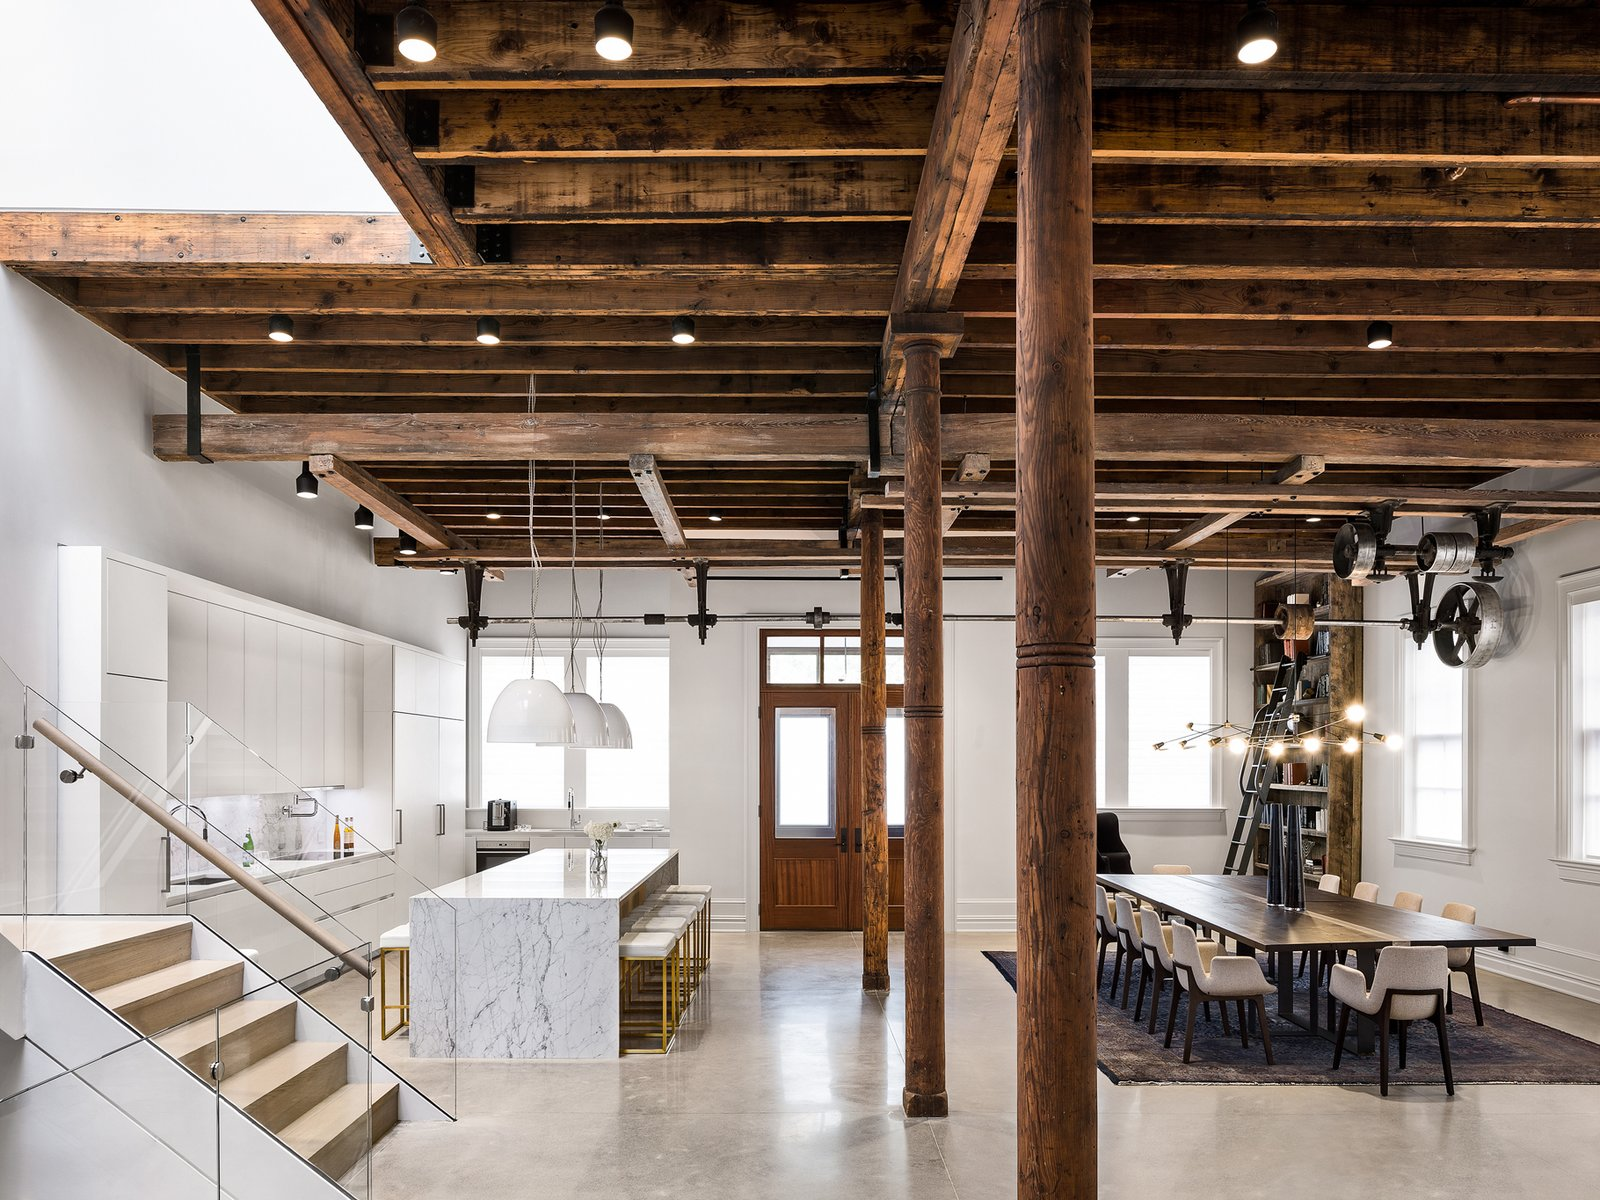 A Historic Propeller Factory Is Converted Into a Gorgeous Home